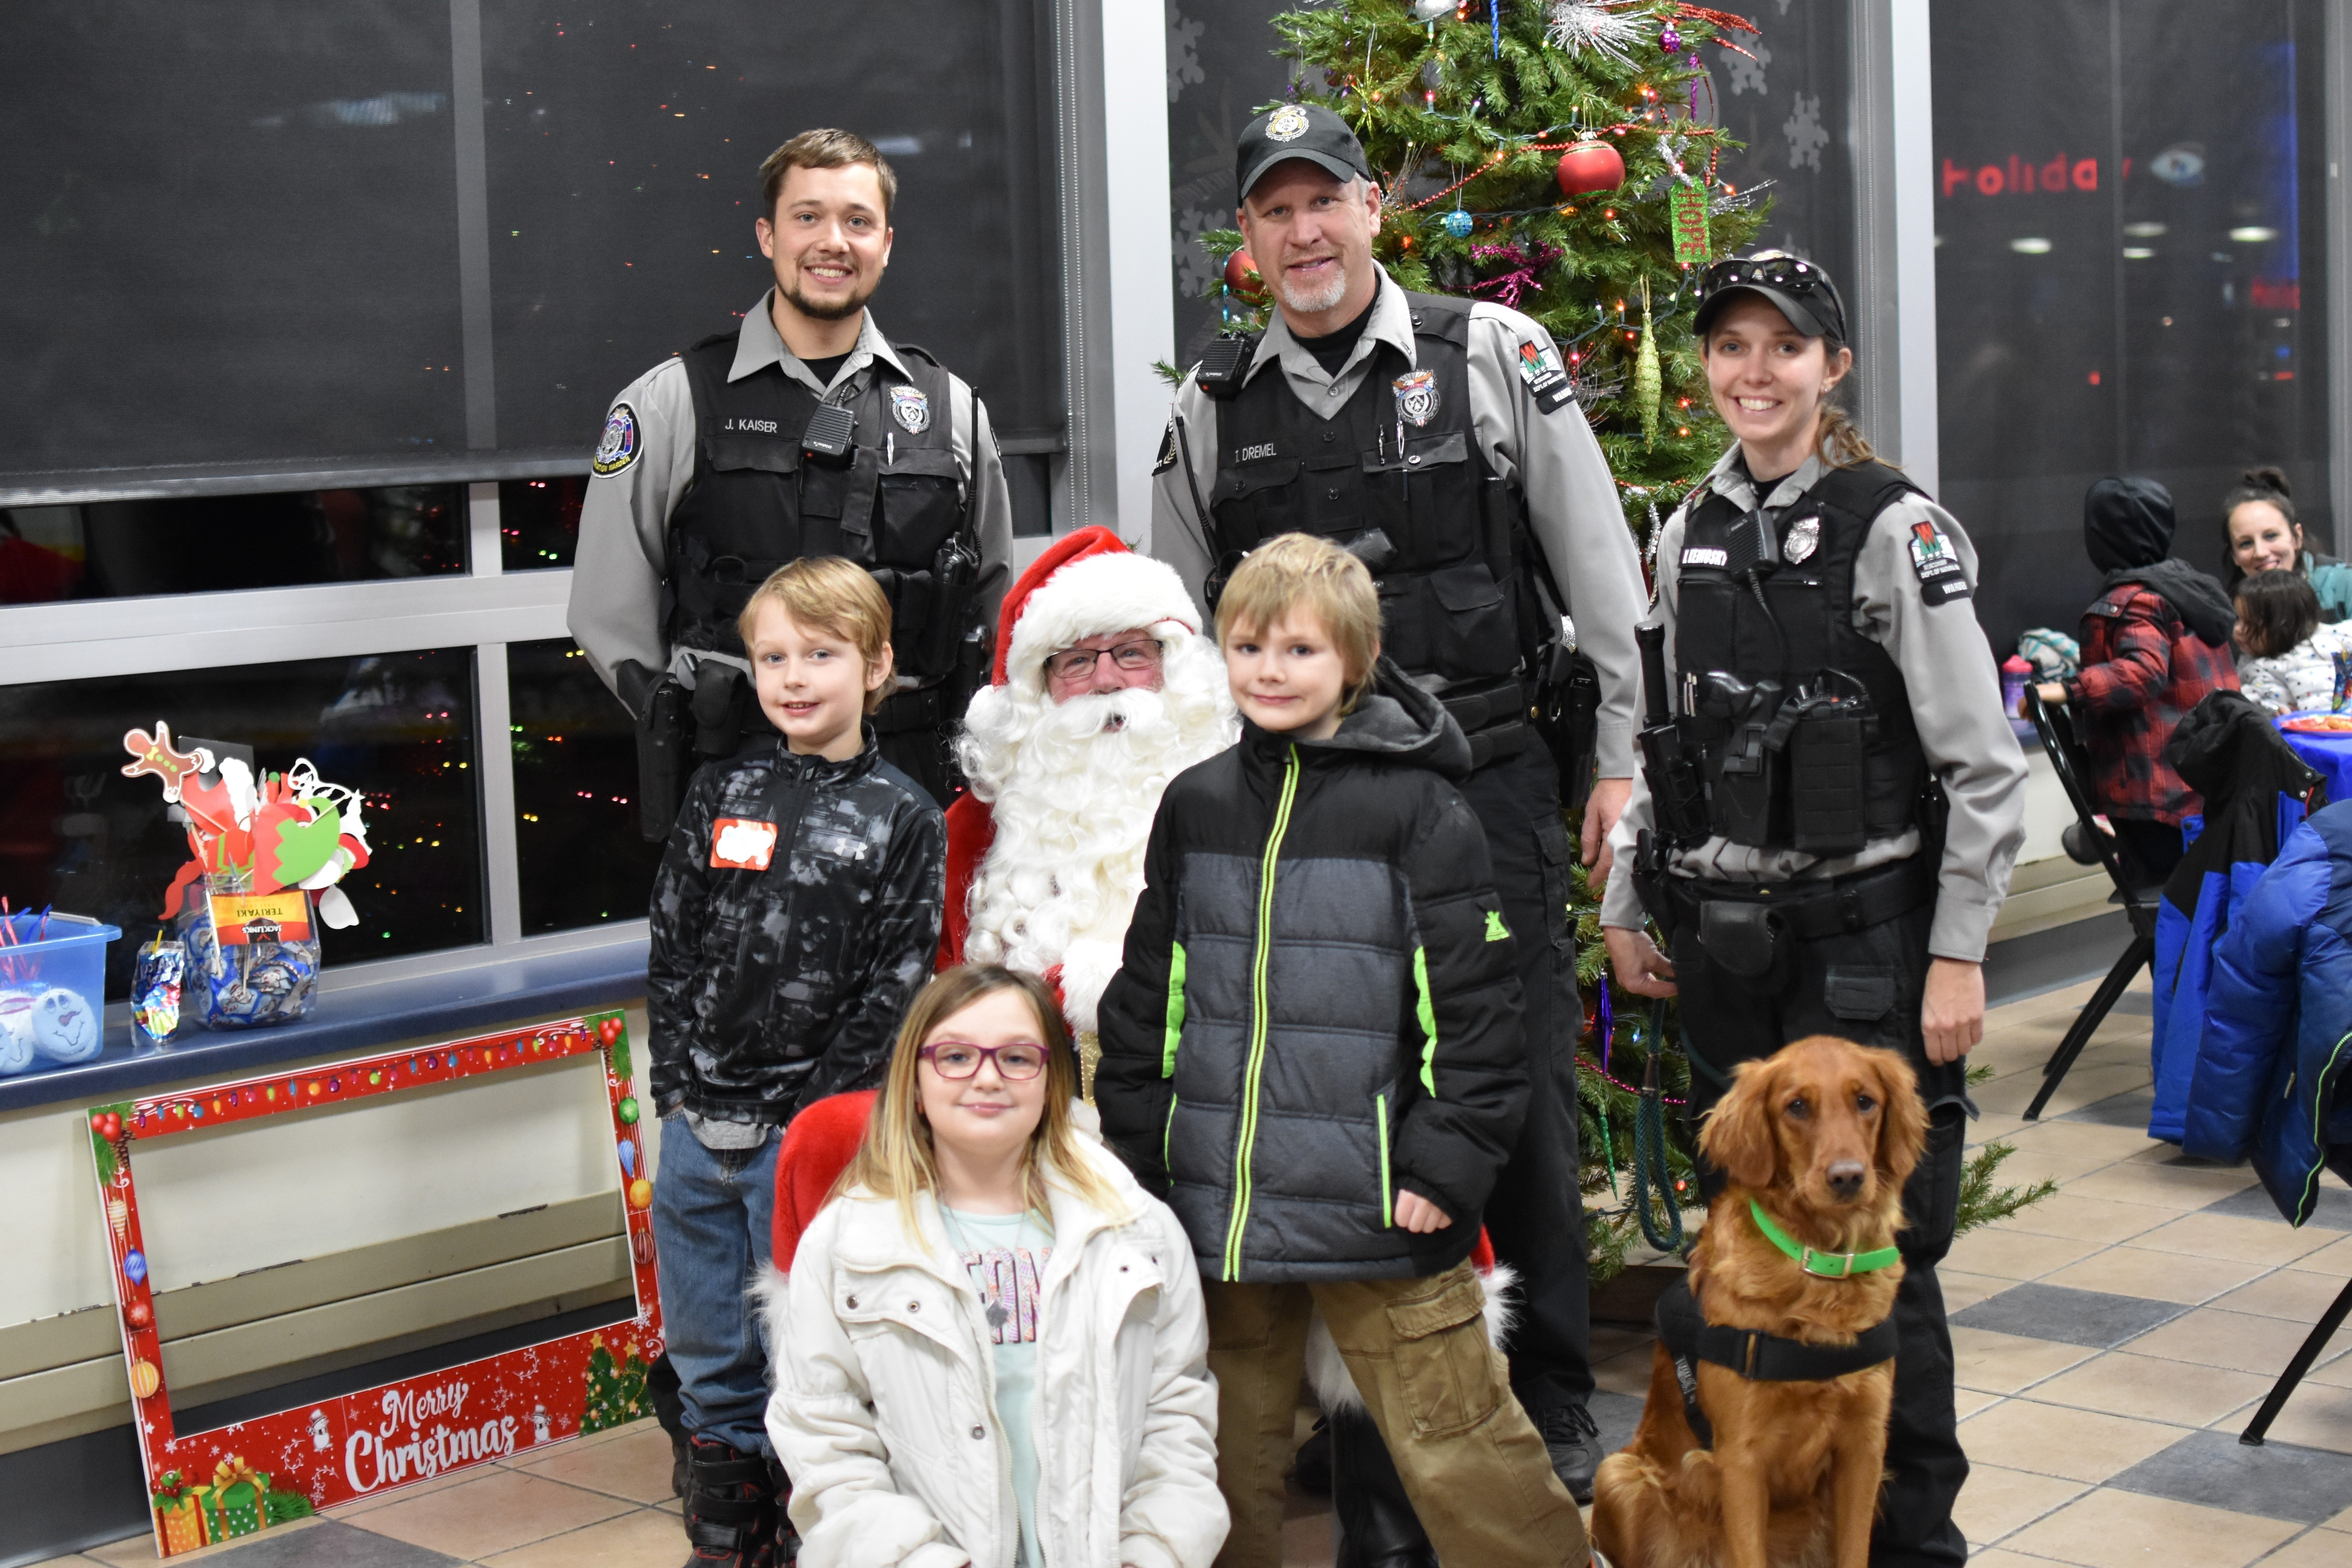 'Wardens Jonathan Kaiser, Kaitlin Kernosky and Lt. Ted Dremel and their partner shoppers at Shop with a Cop in Waupaca County.